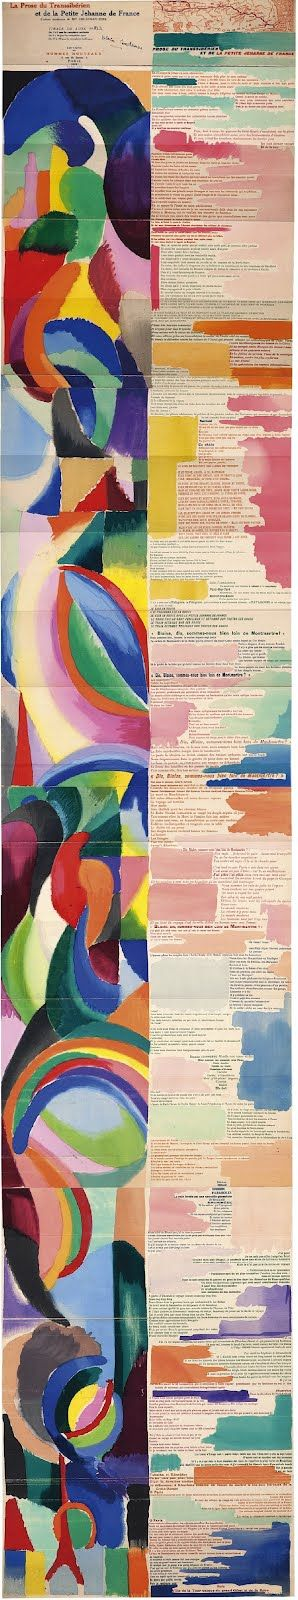 Sonia Delaunay's wonderfully illustrated poem, La Prose du Transsibérien et de la petite Jehanne de France, by Swiss-French poet Blaise Cendrars is one of the highlights of 20th century literature and modern art. In this wonderful publication, the observer is entranced by Sonia Delaunay's extraordinary effects of lush, vibrant colors and bold shapes::